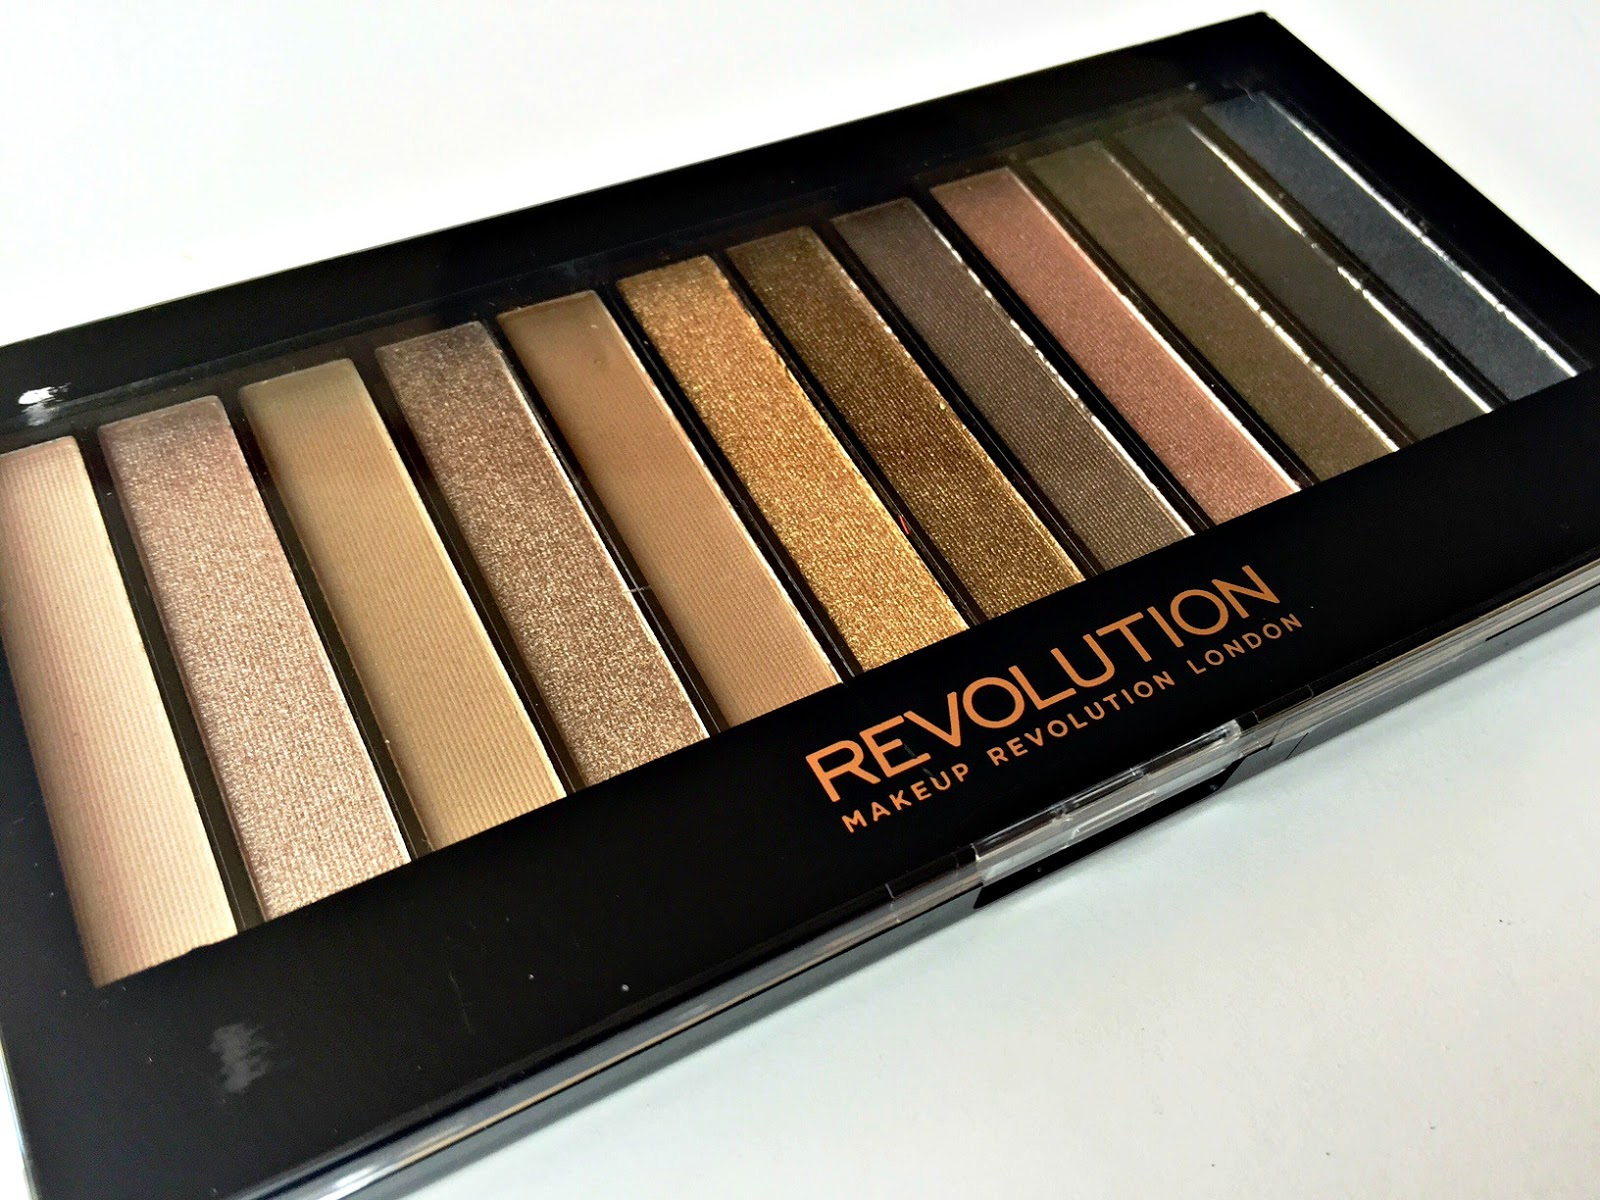 REVIEW & SWATCHES - Makeup Revolution Redemption Palette, Iconic 1